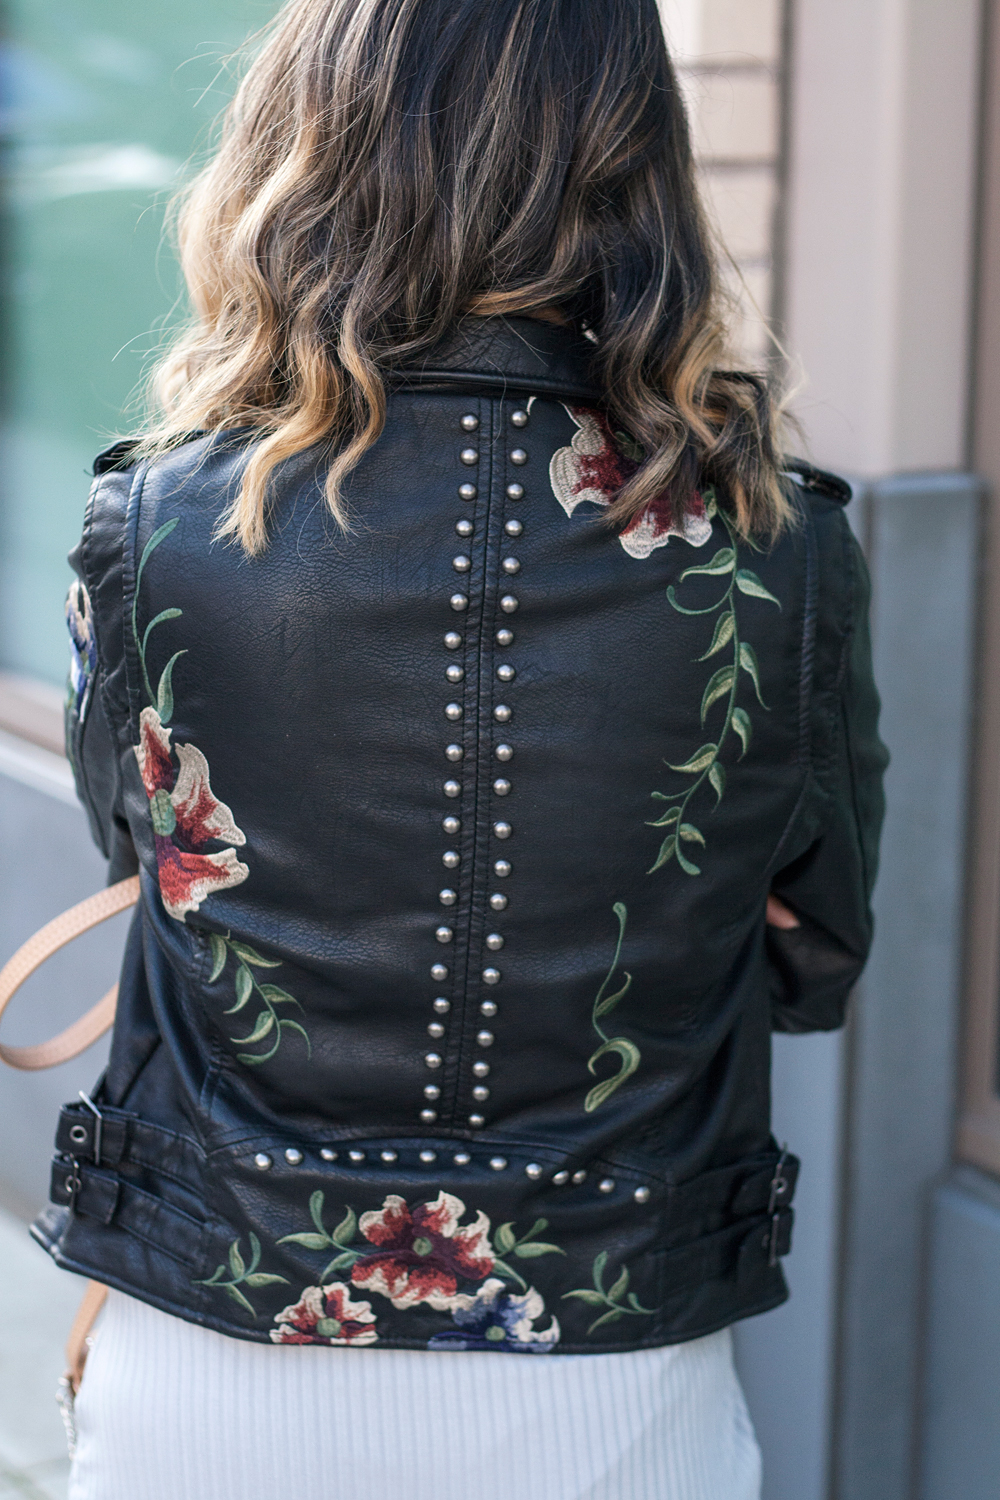 08-floral-studs-leatherjacket-travel-fashion-style